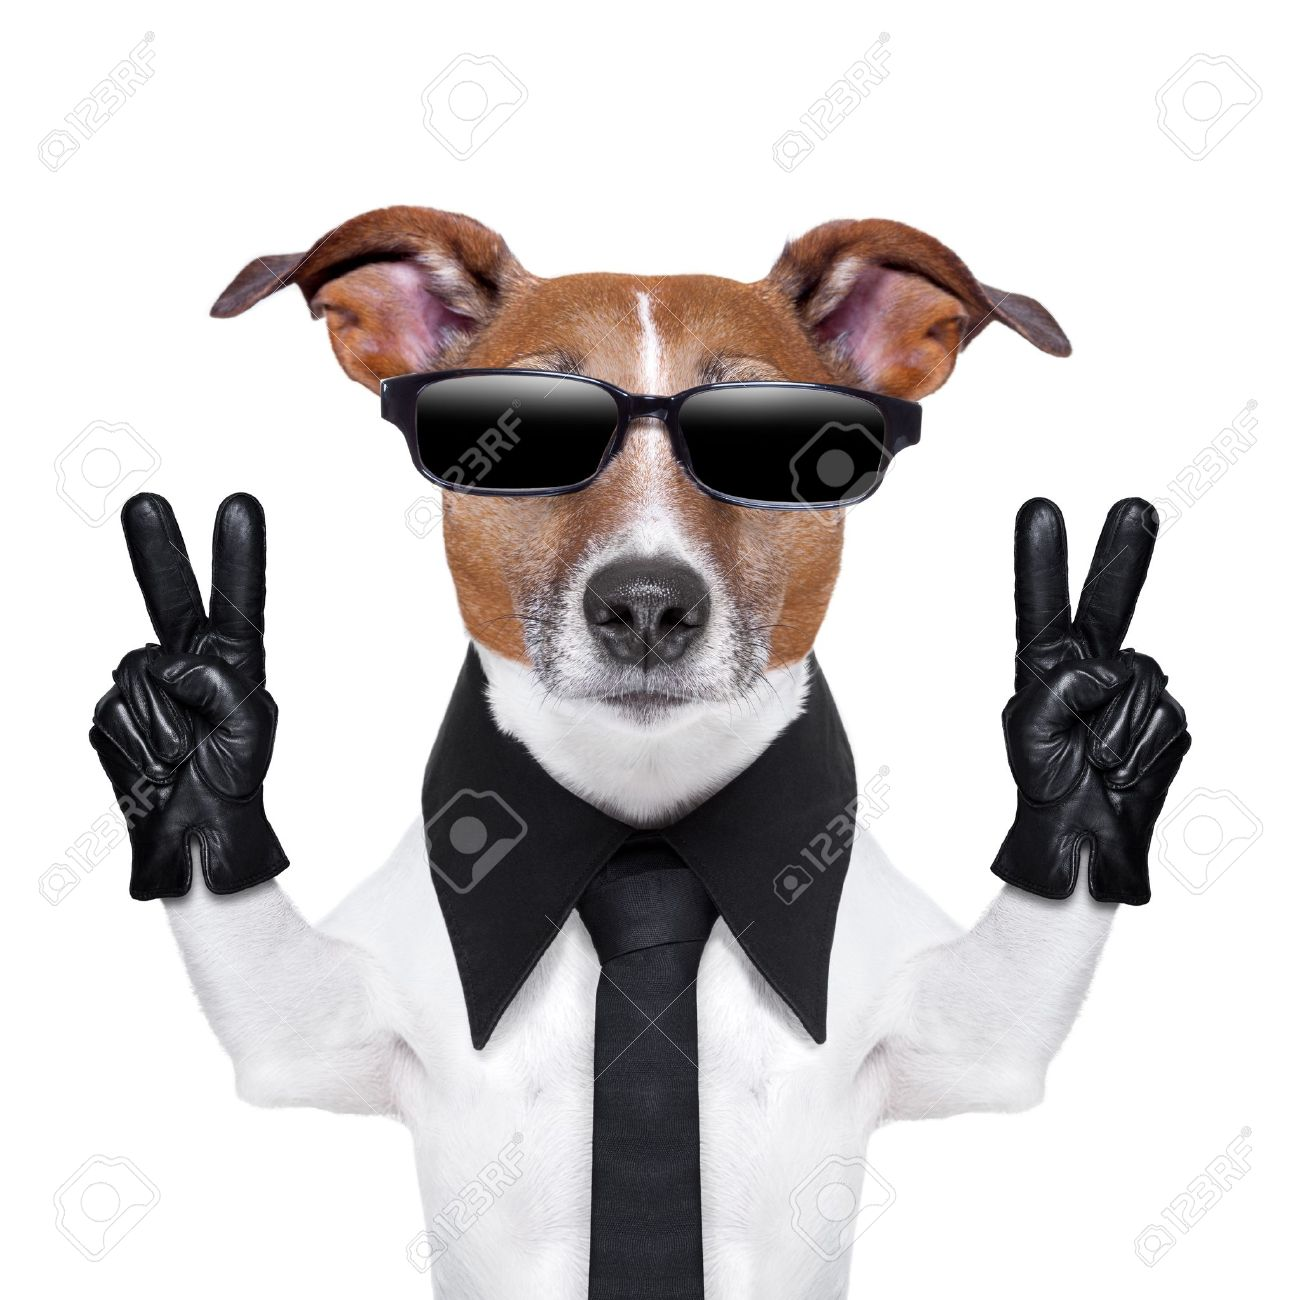 Black leather gloves with coloured fingers - Stock Photo Cool Dog With Peace Fingers In Black Leather Gloves